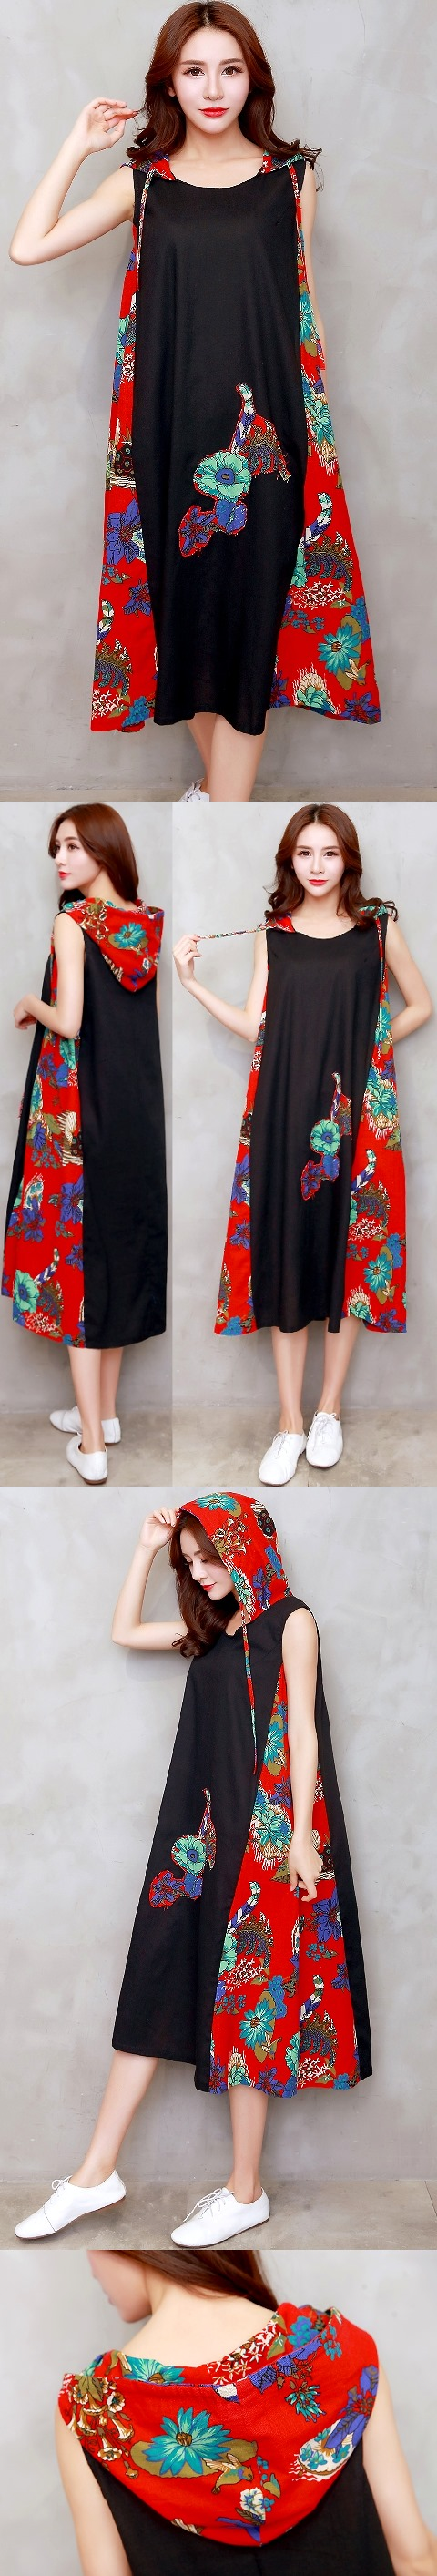 Ethnic Hooded-dress with patches-Black (RM)